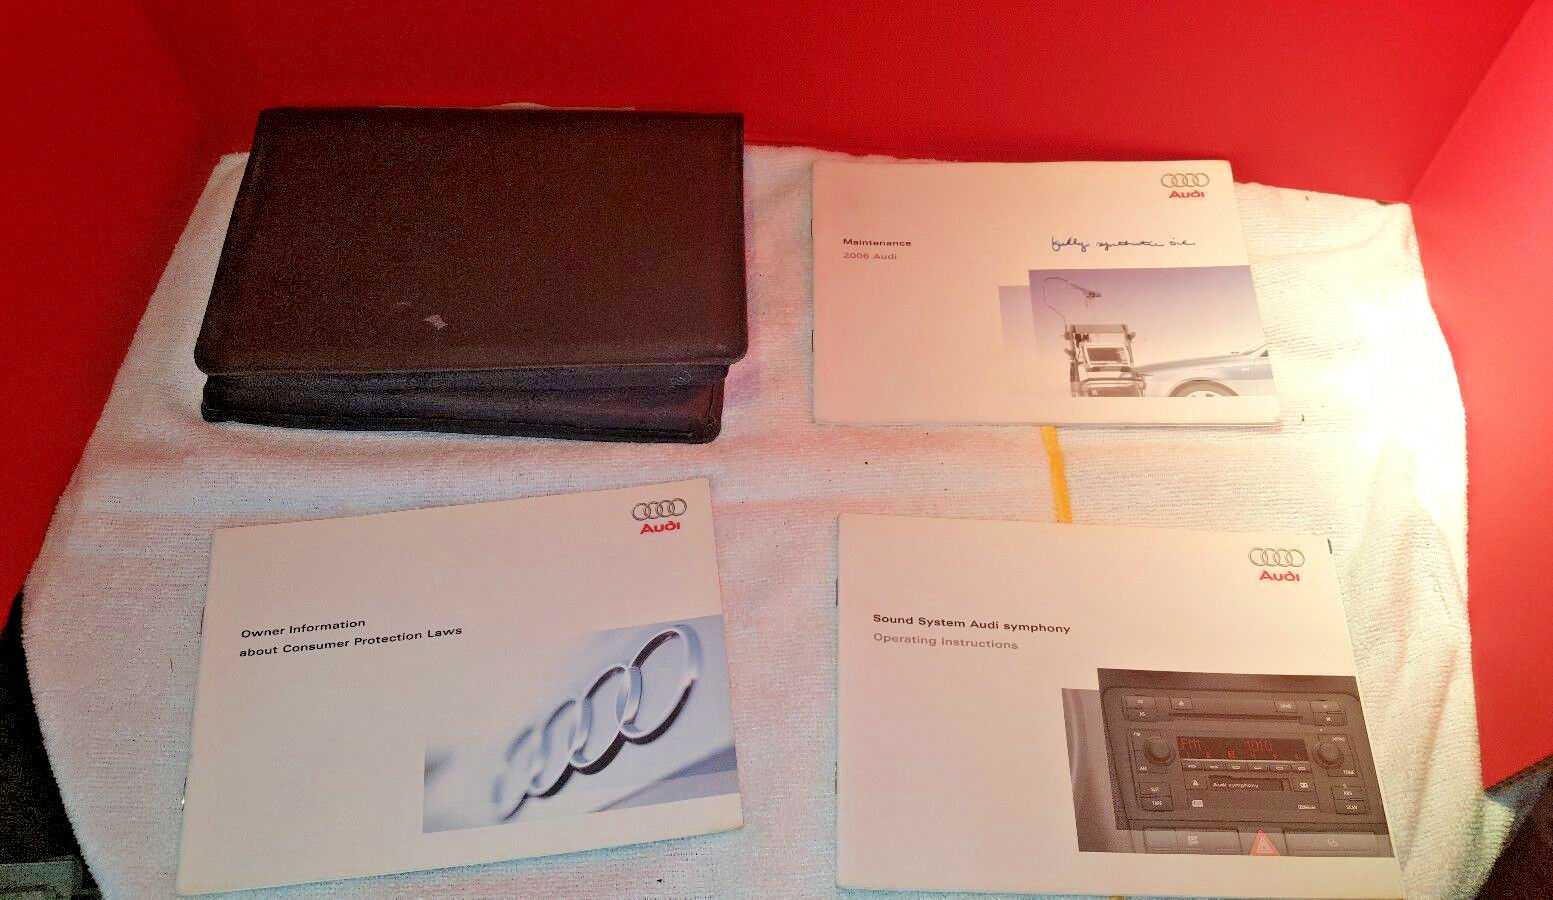 2006 Audi A4 Owners Manual 1 of 2Only 2 available ...